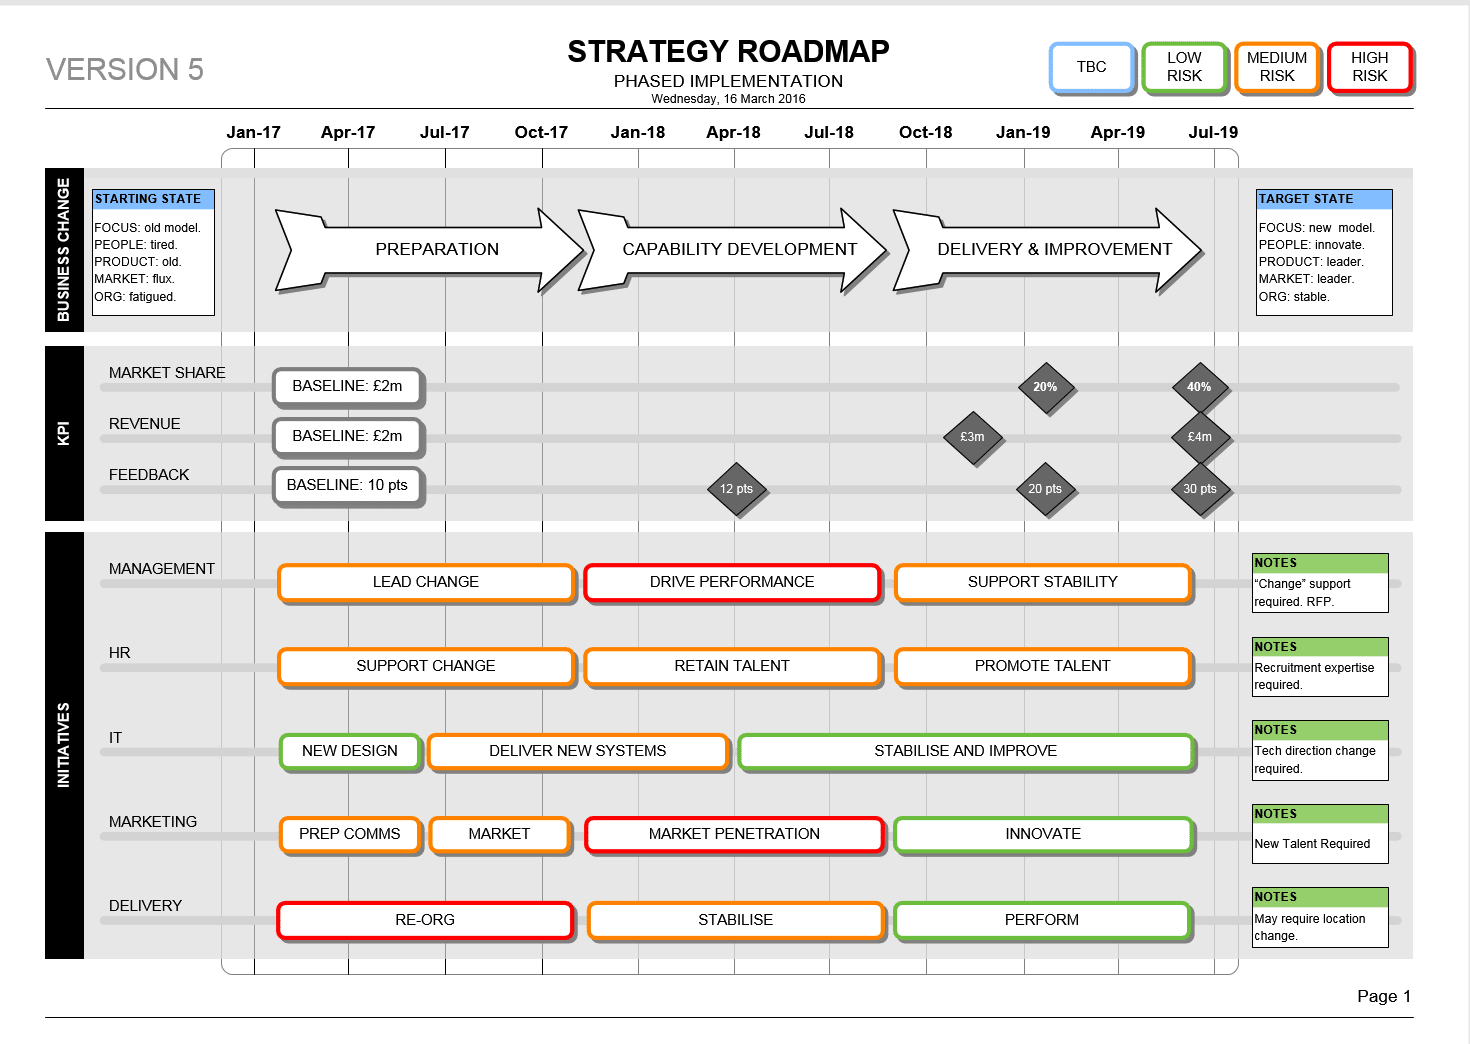 visio project timeline template - strategy roadmap template visio kpi delivery